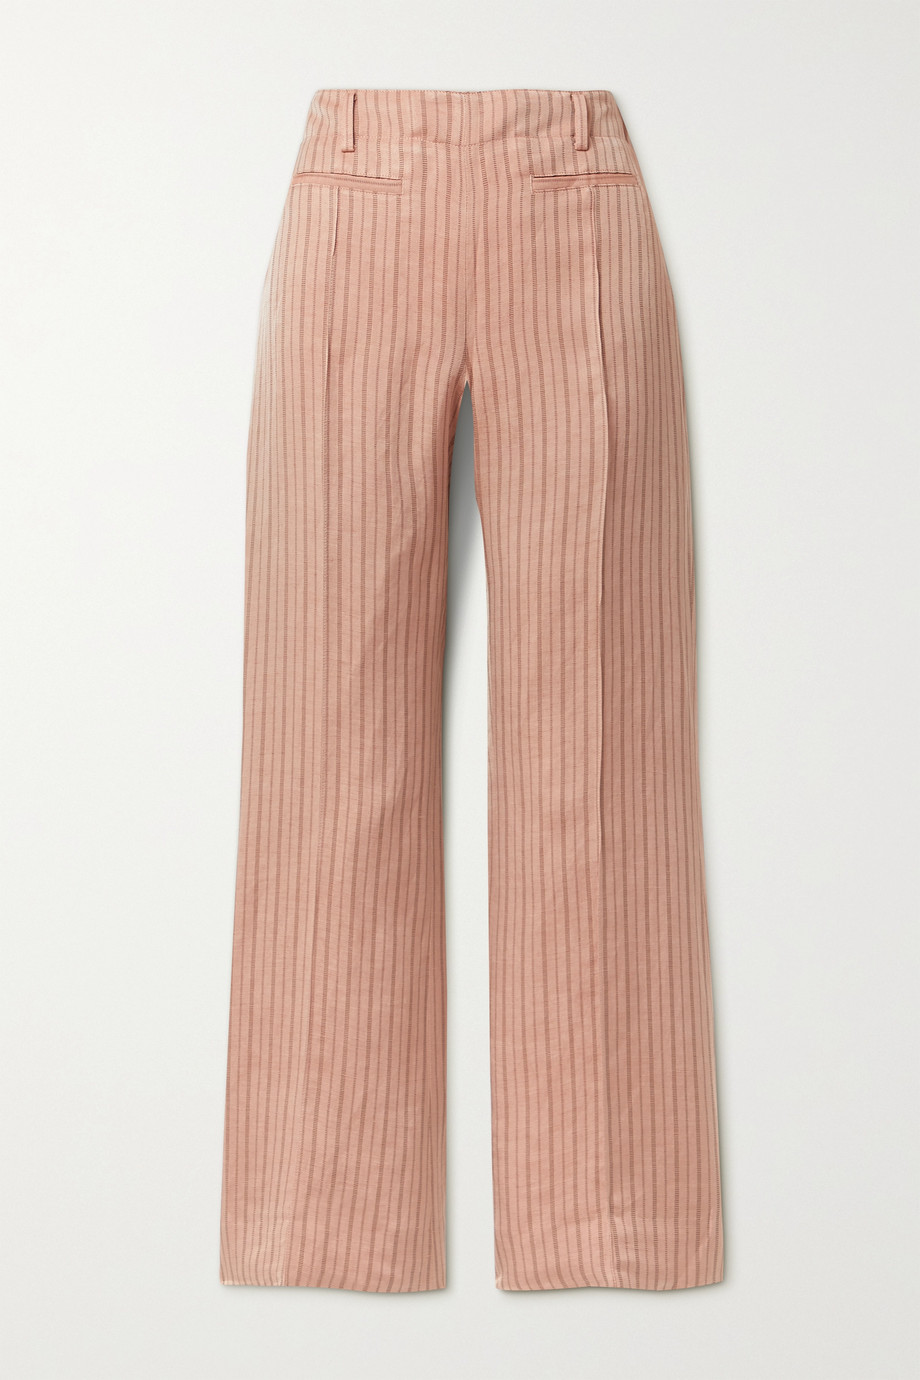 ACNE STUDIOS Pinstriped linen-blend twill bootcut pants